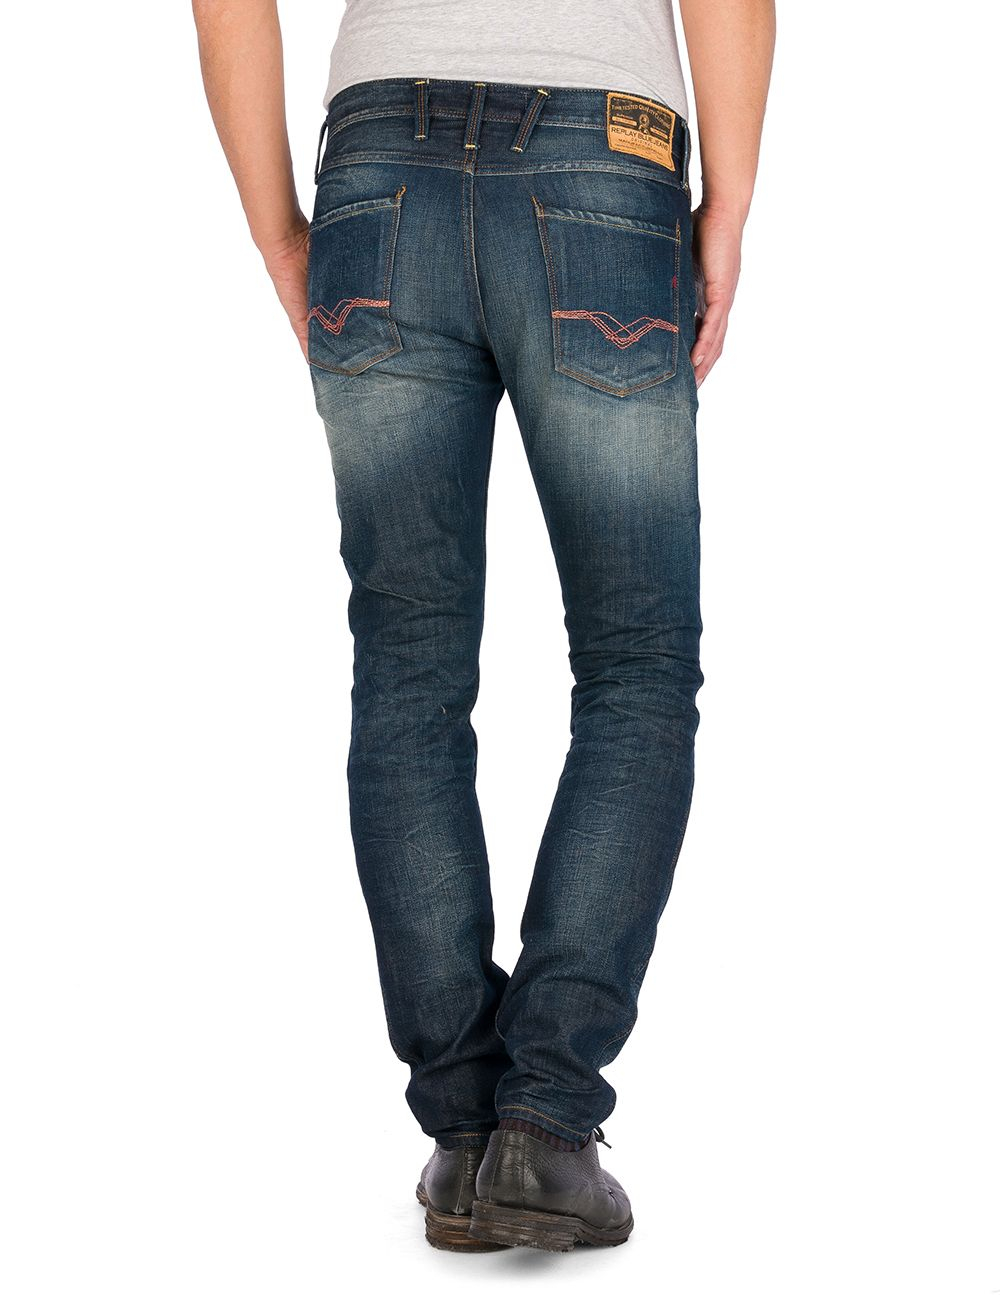 Replay Anbass Jeans in Denim Dark Wash (Blue) for Men